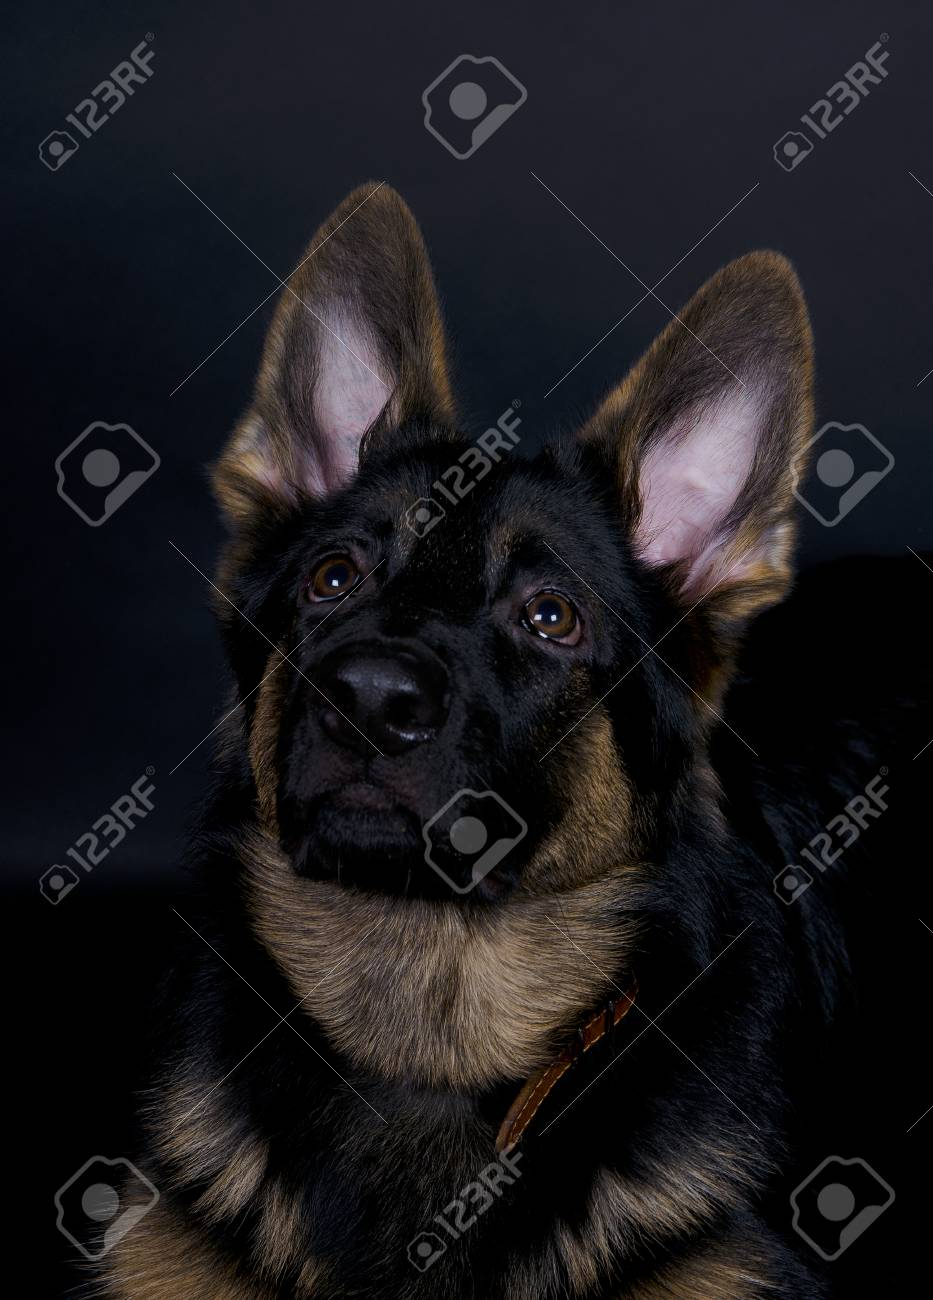 Cute German Shepherd Puppy On The Black Background With Focus